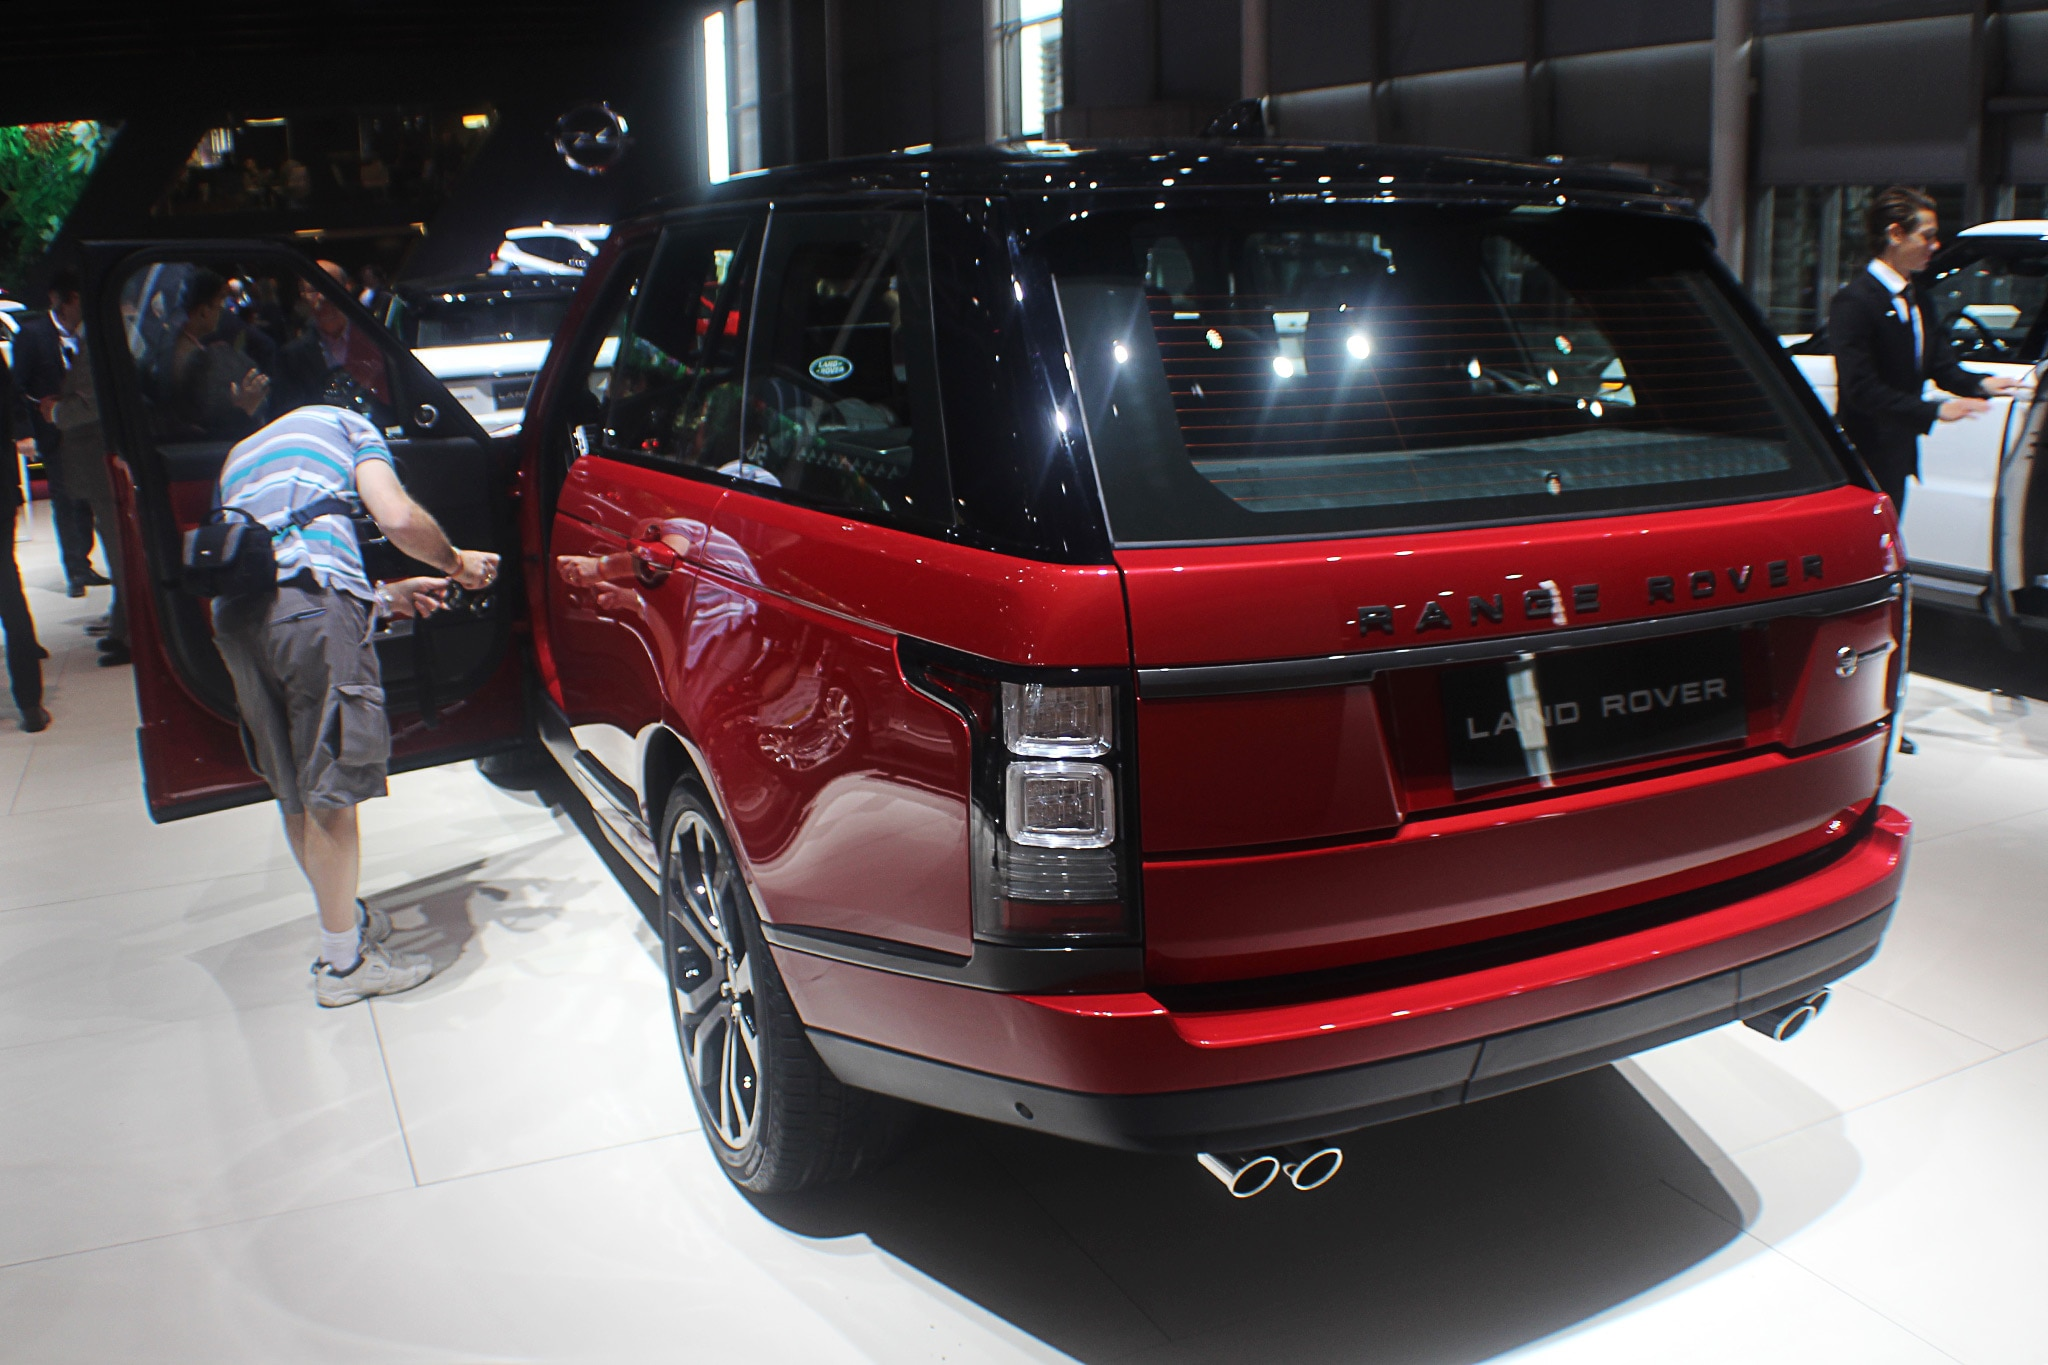 2017 range rover svautobiography dynamic joins rover stable automobile magazine. Black Bedroom Furniture Sets. Home Design Ideas